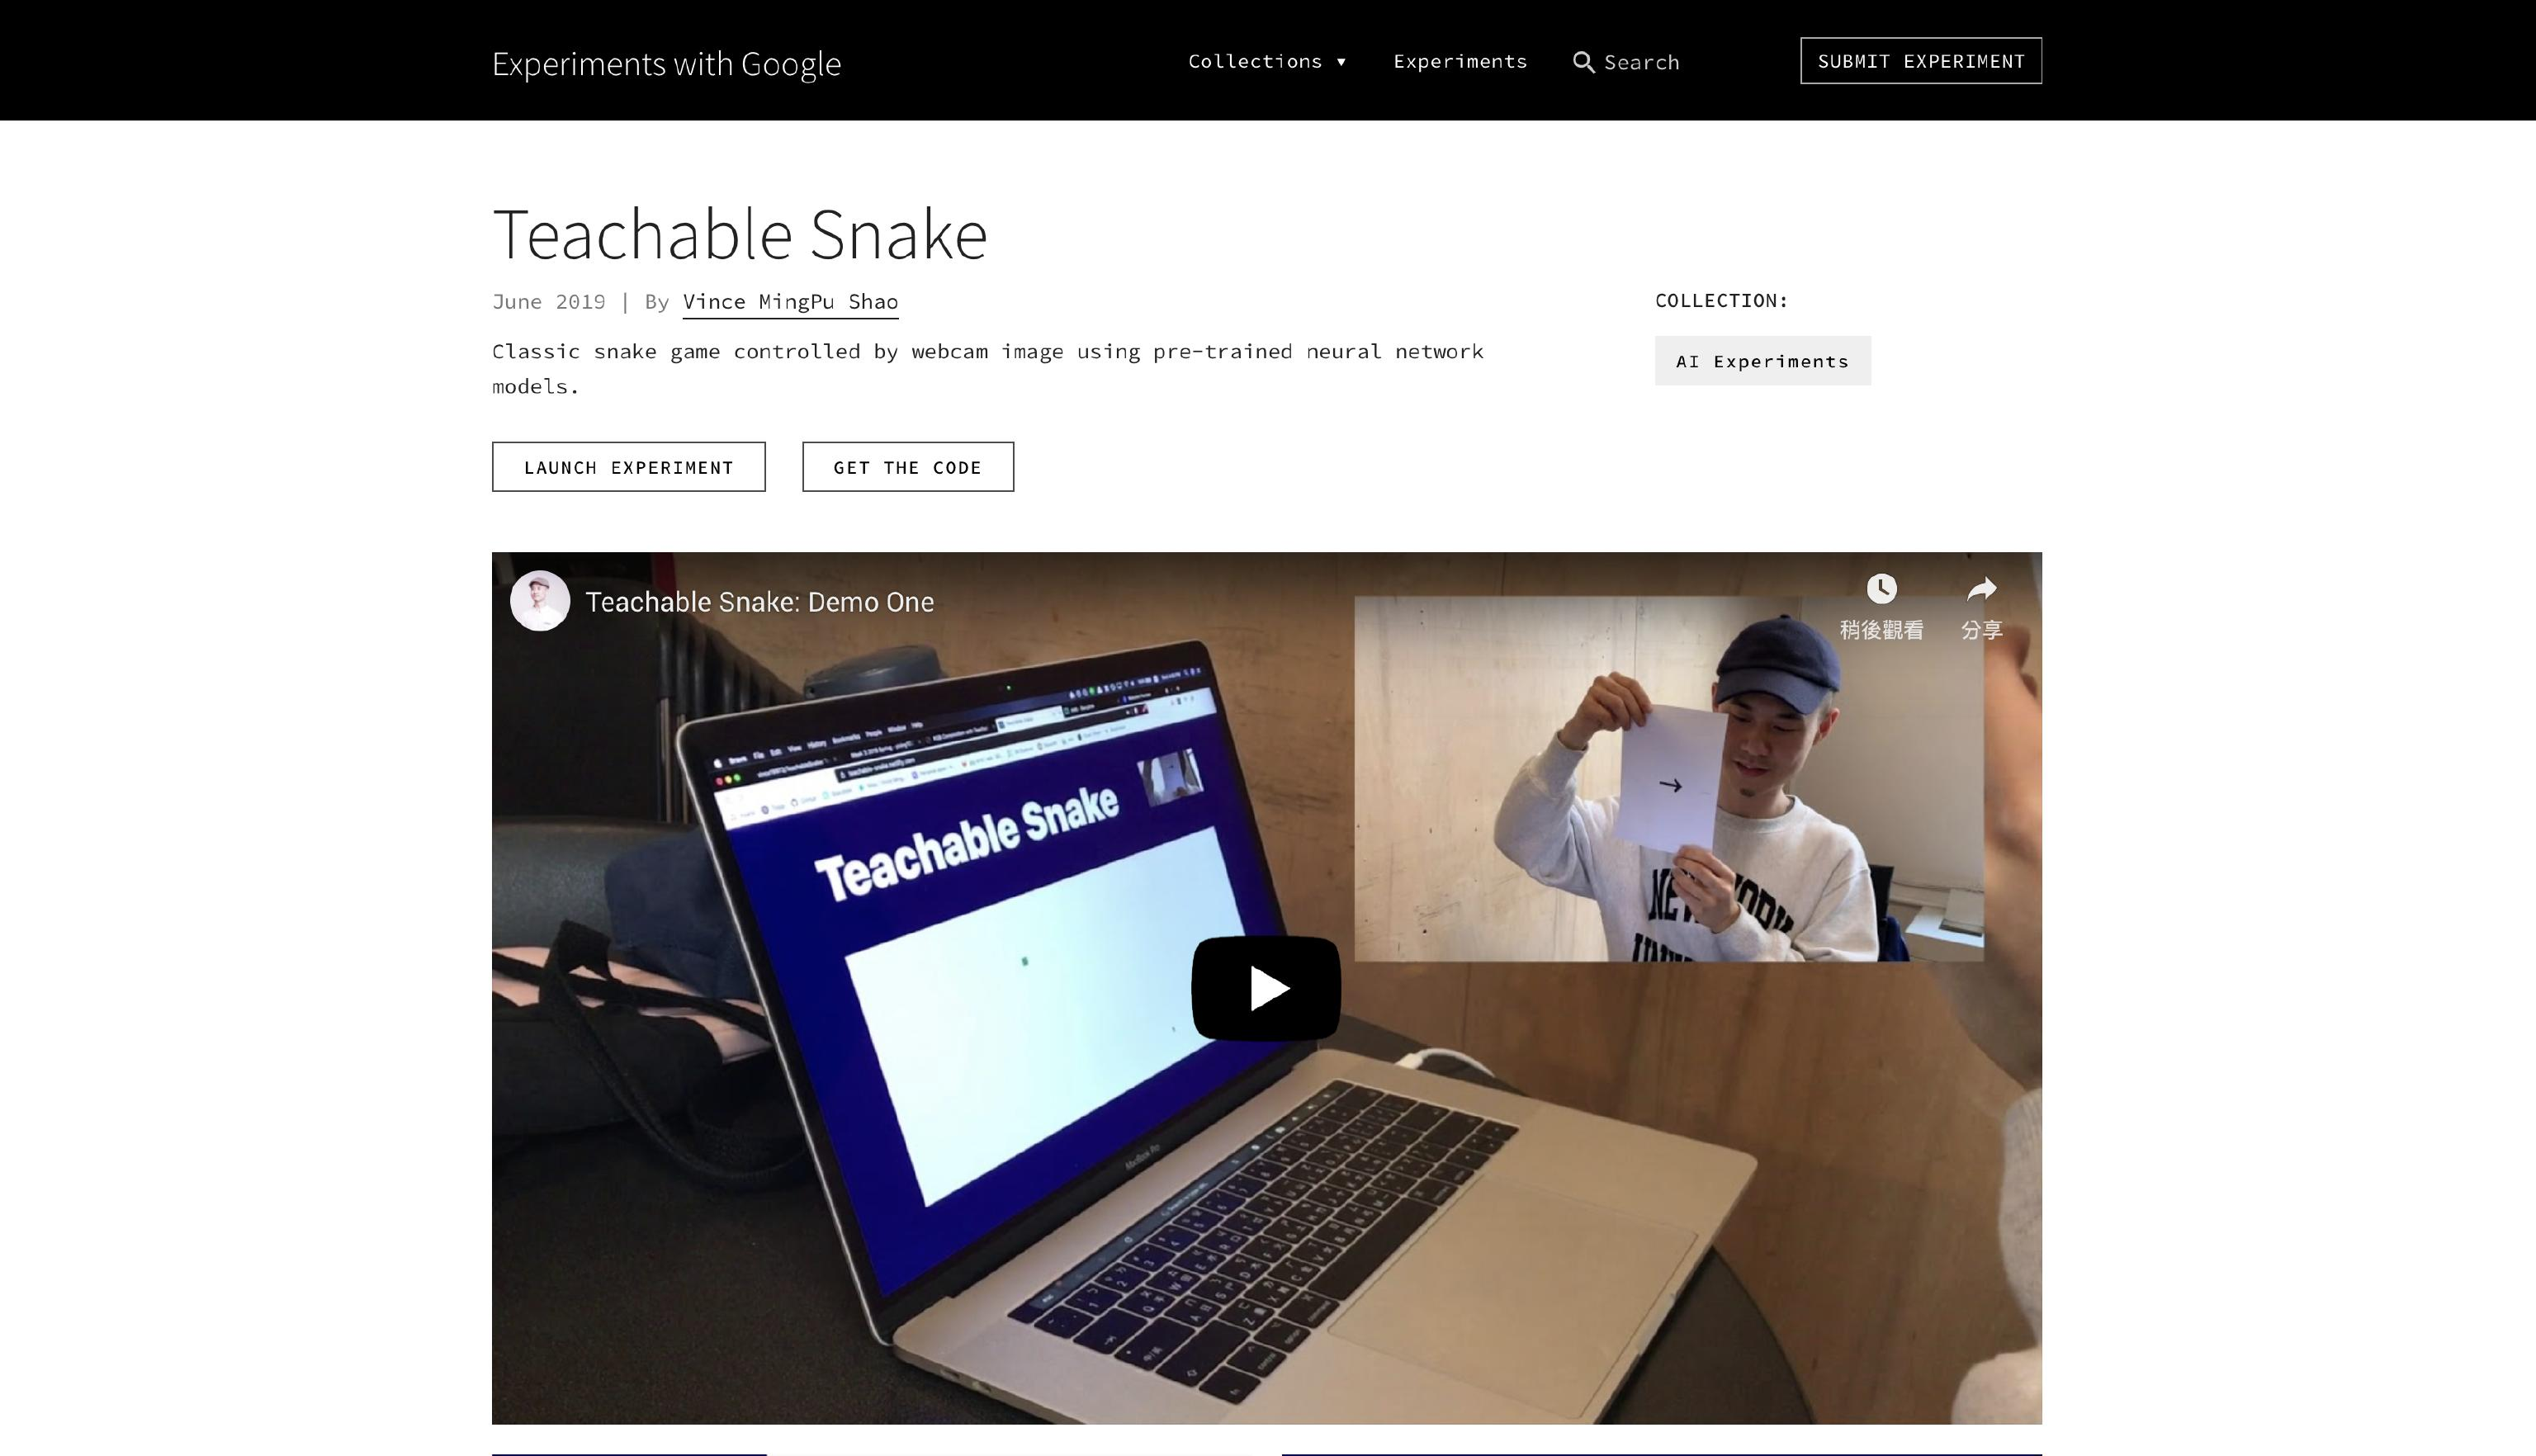 Teachable Snake